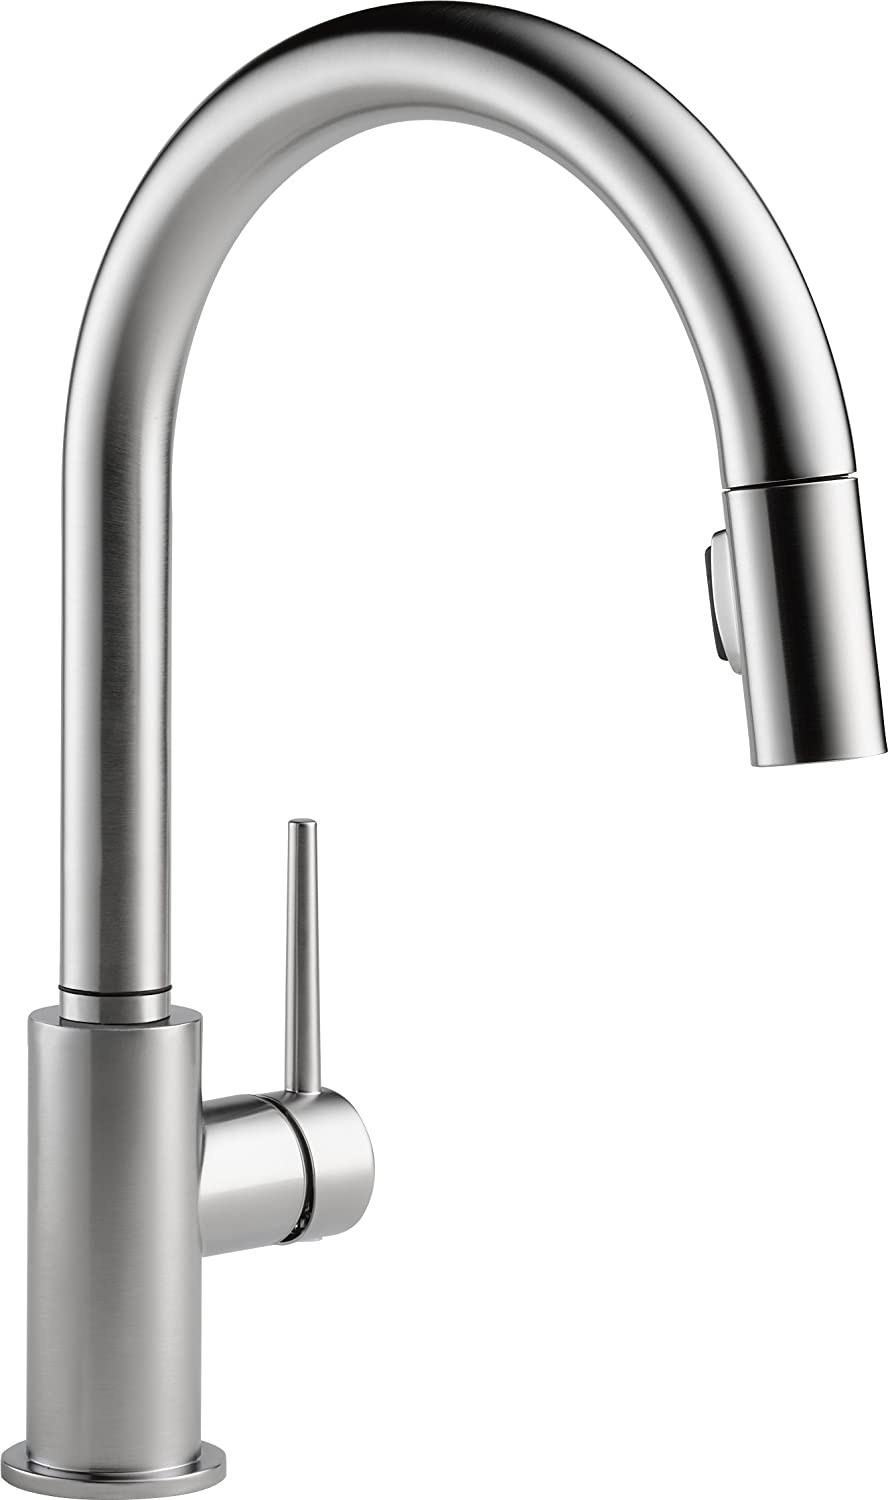 Modern Kitchen Faucets Kitchen Faucets Ideas Luxury Kitchen Faucets Modern Kitchen Sinks And